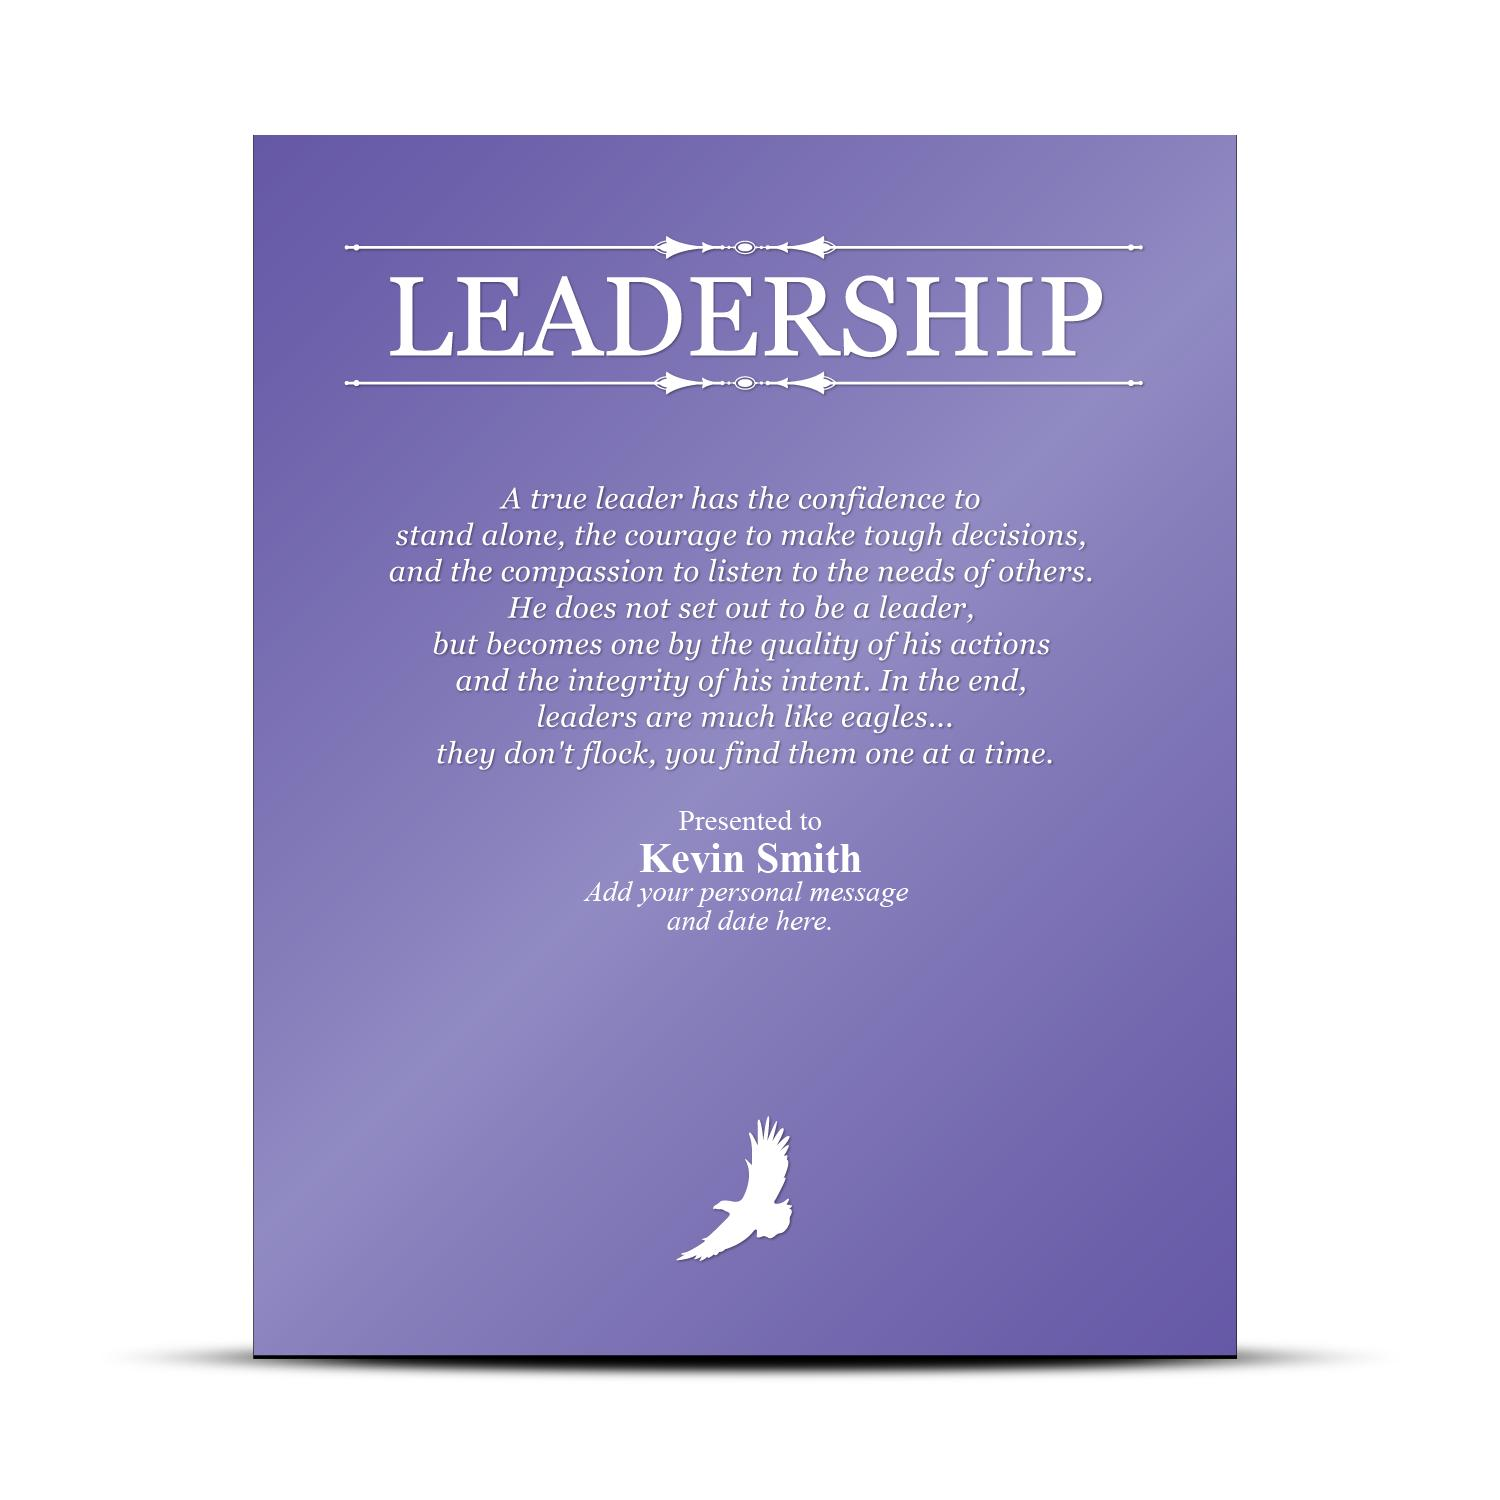 Leadership Quotes For Awards. QuotesGram